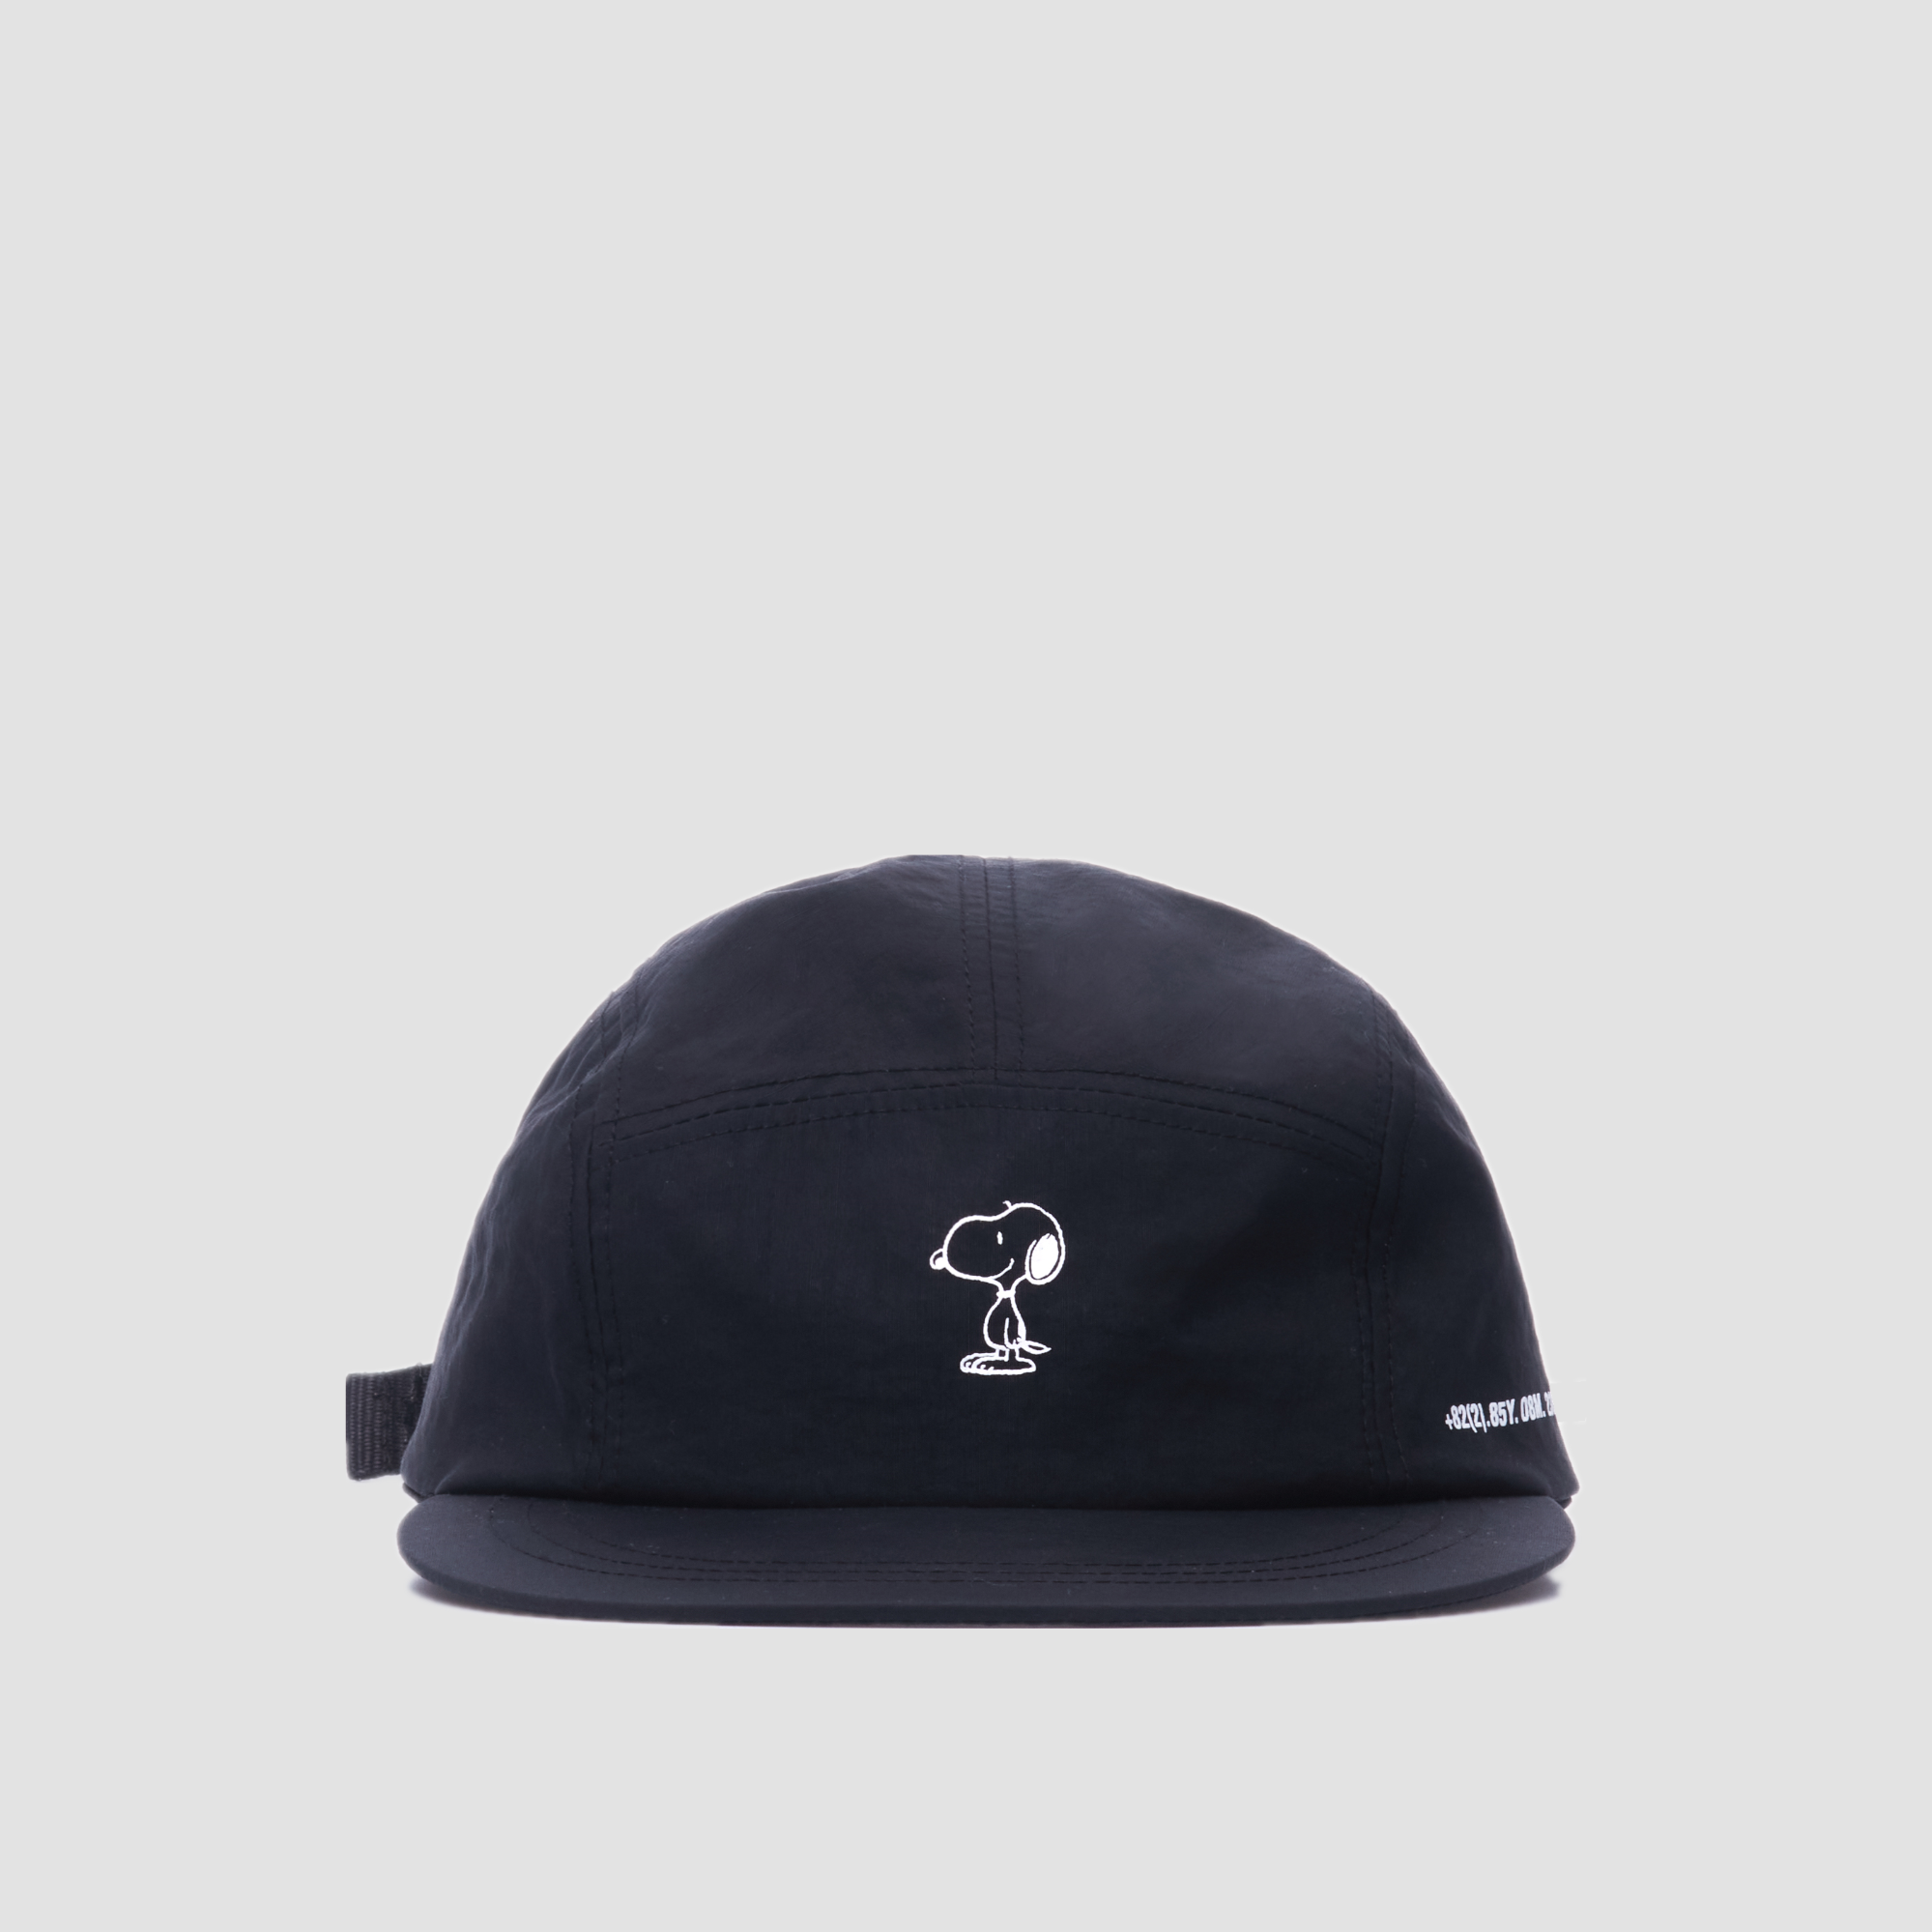 AGE X Snoopy Standing Cap BK